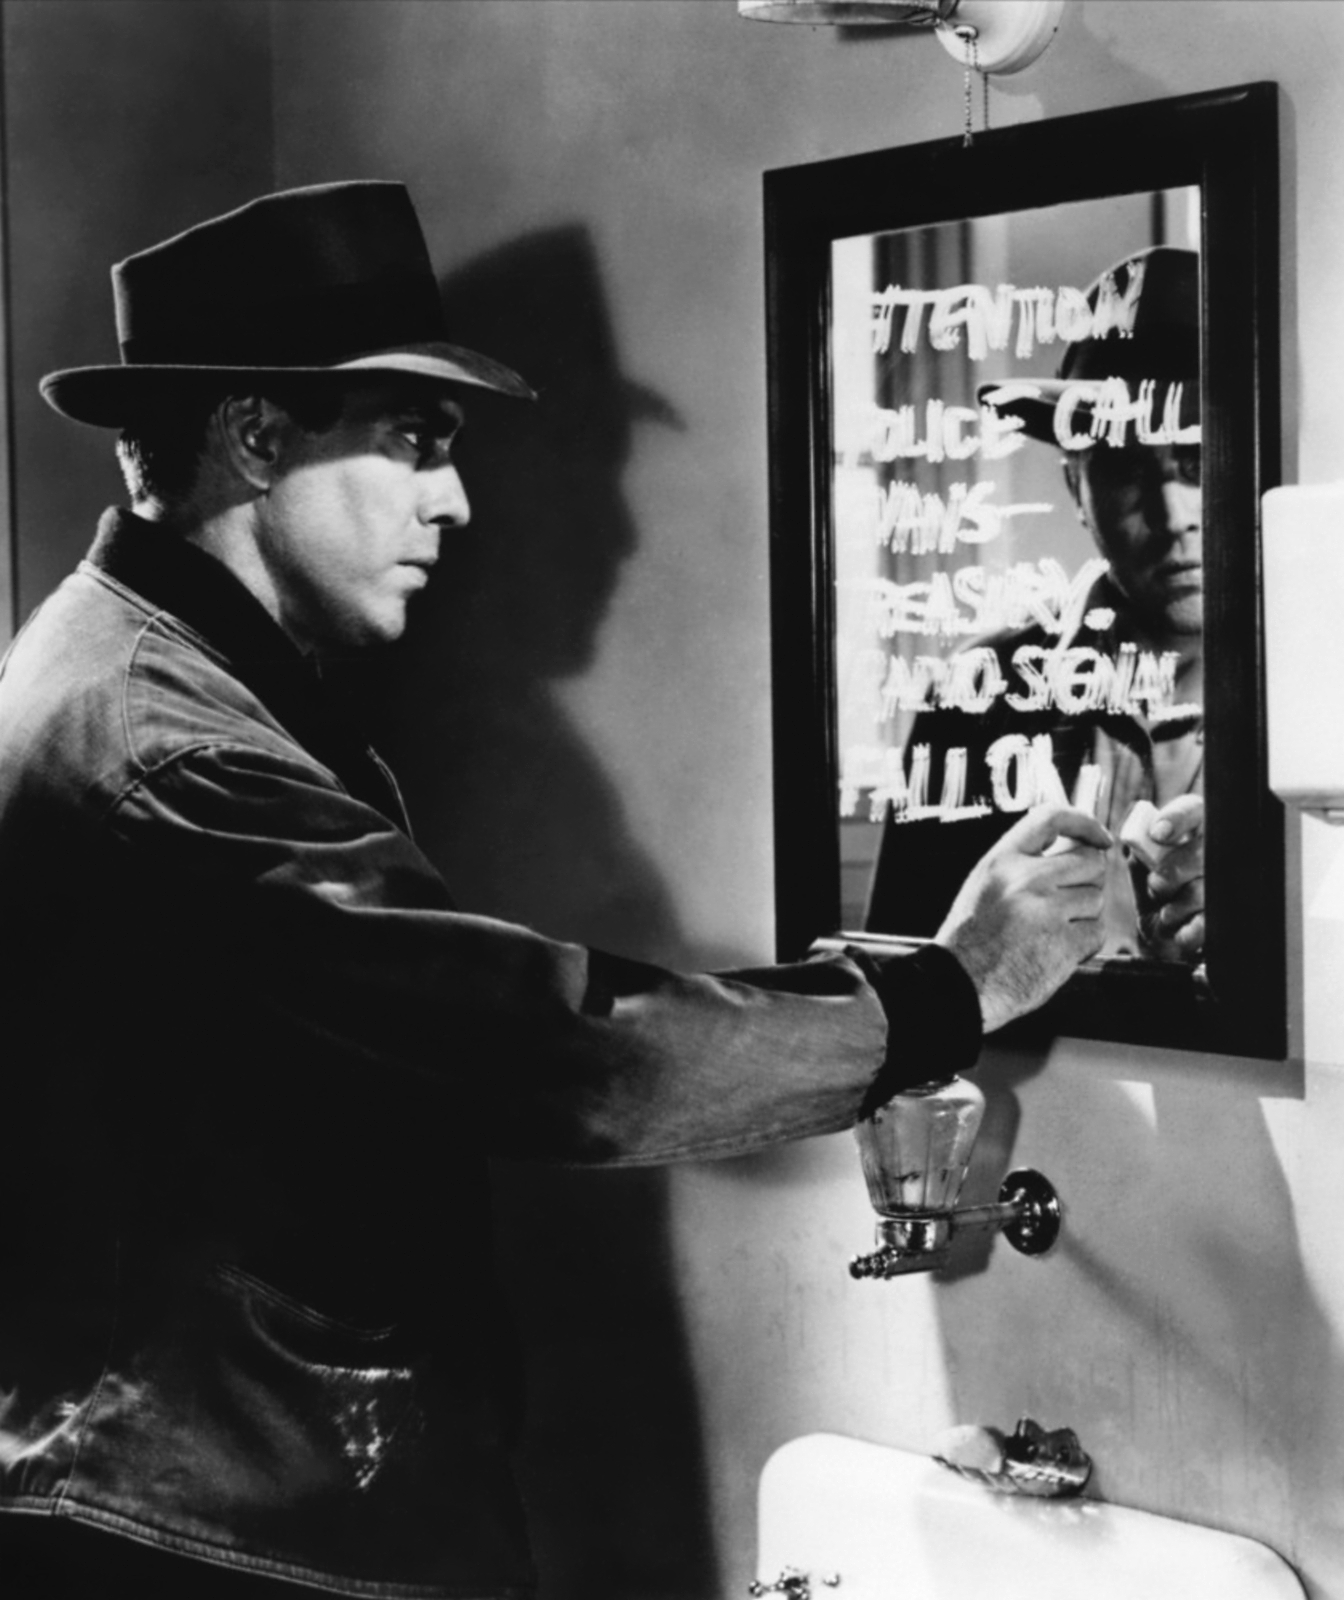 Edmond O'Brien in White Heat